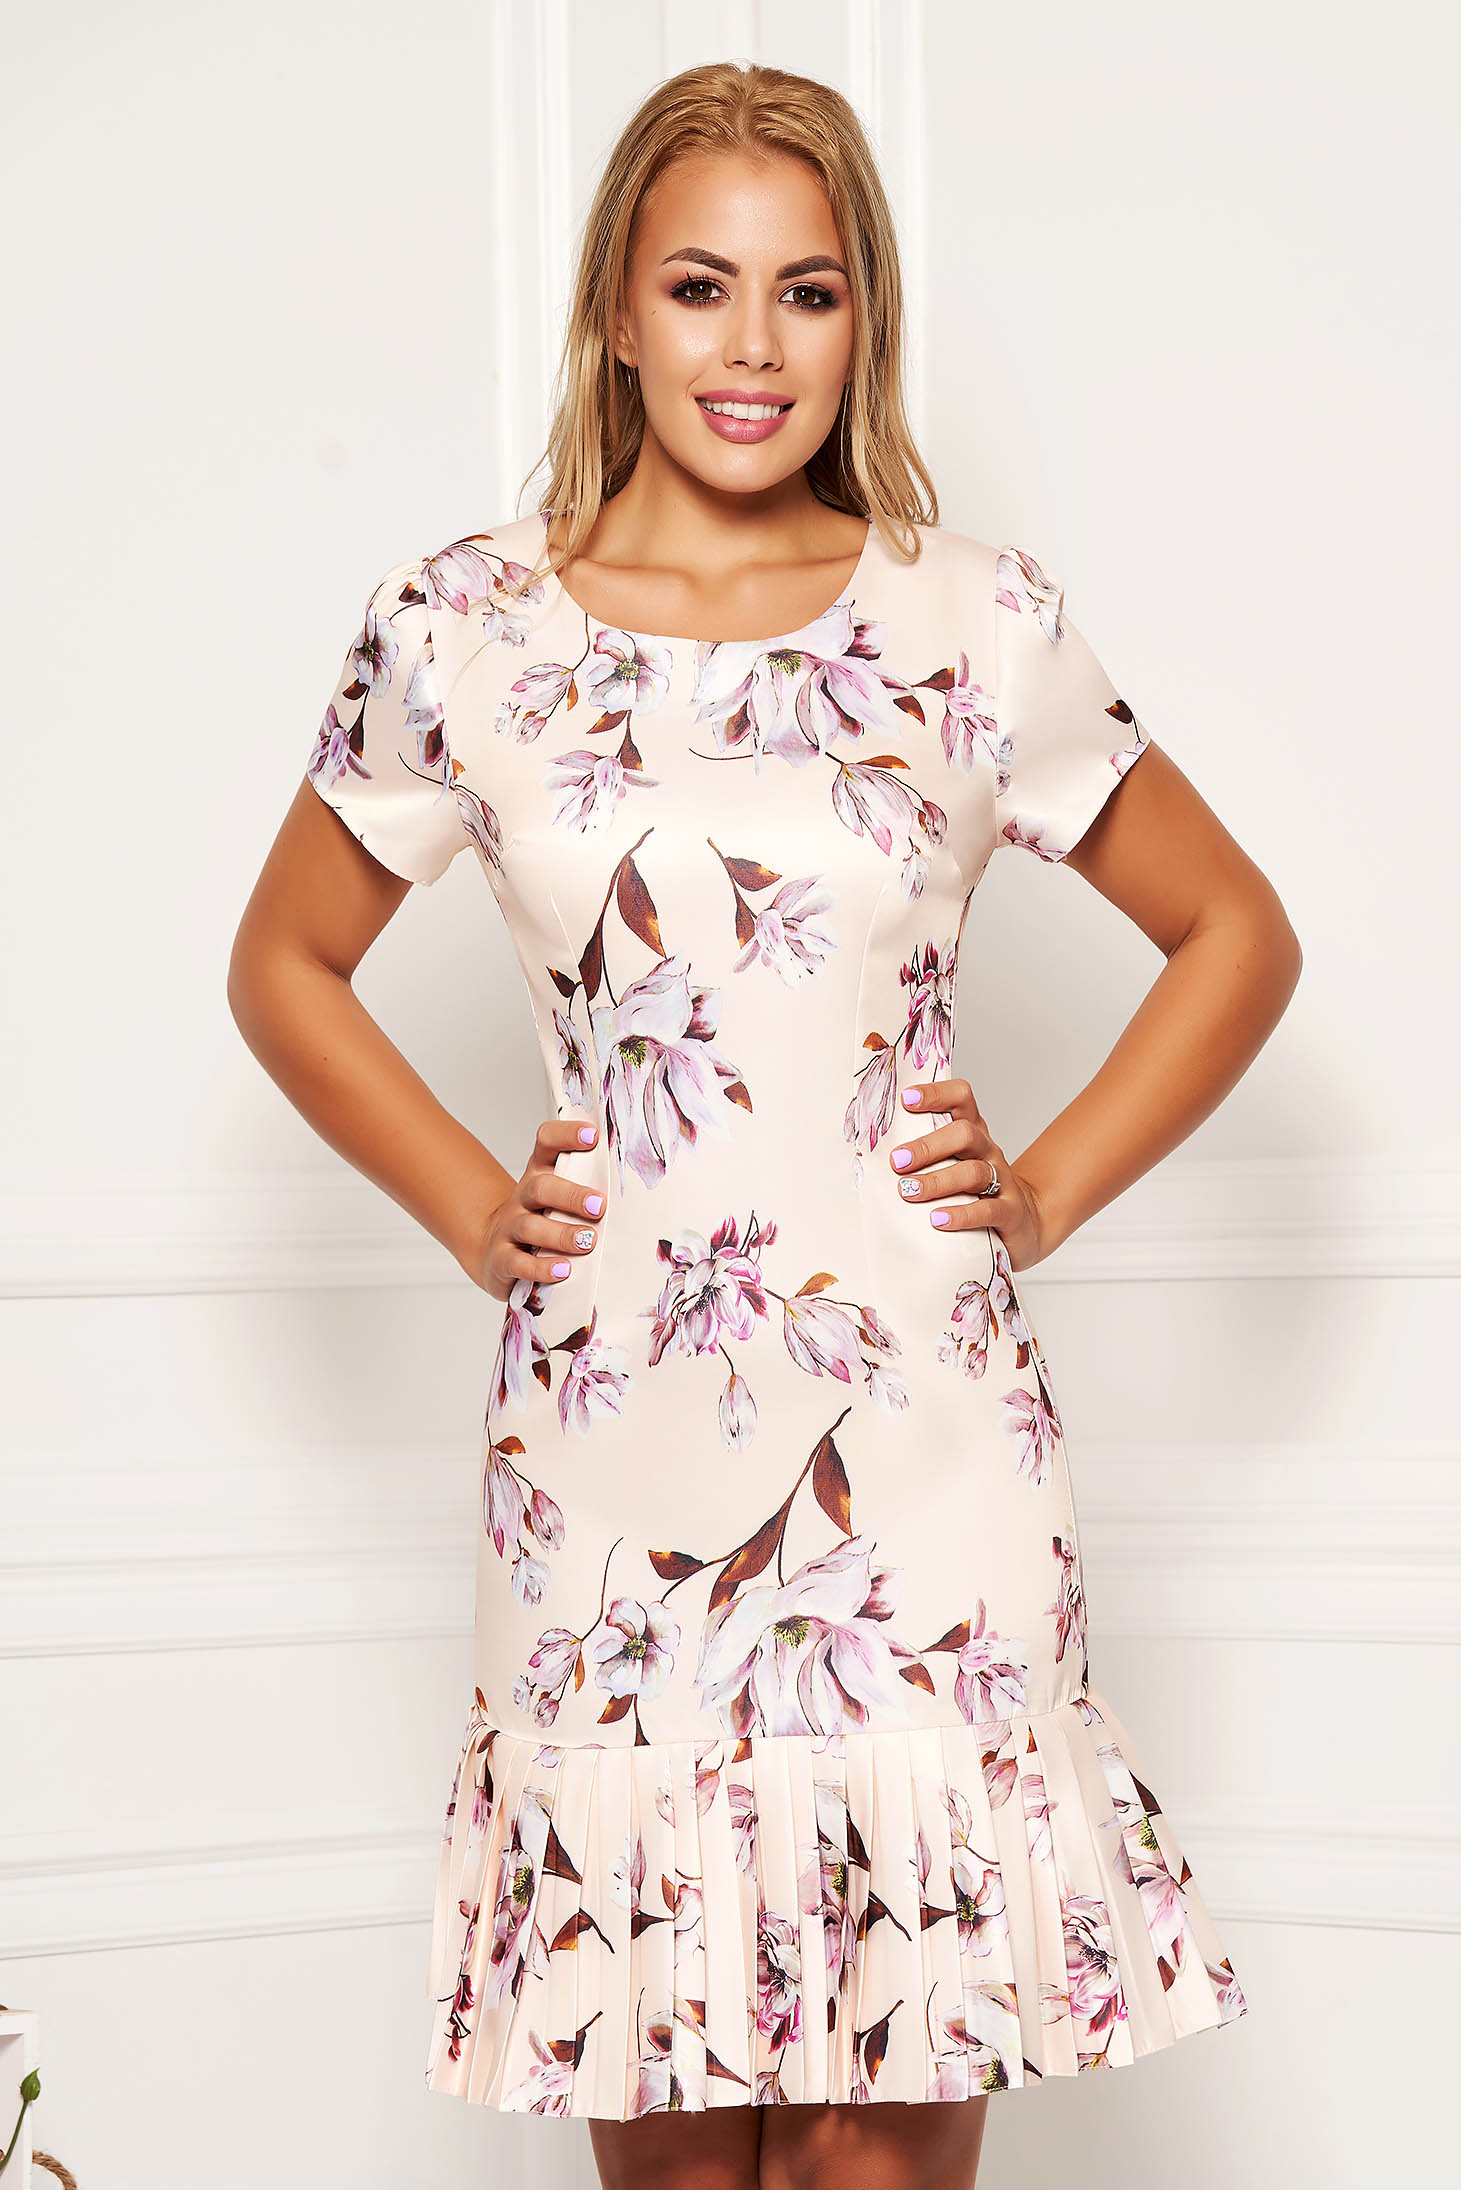 Cream elegant daily a-line dress short sleeves nonelastic fabric with floral print